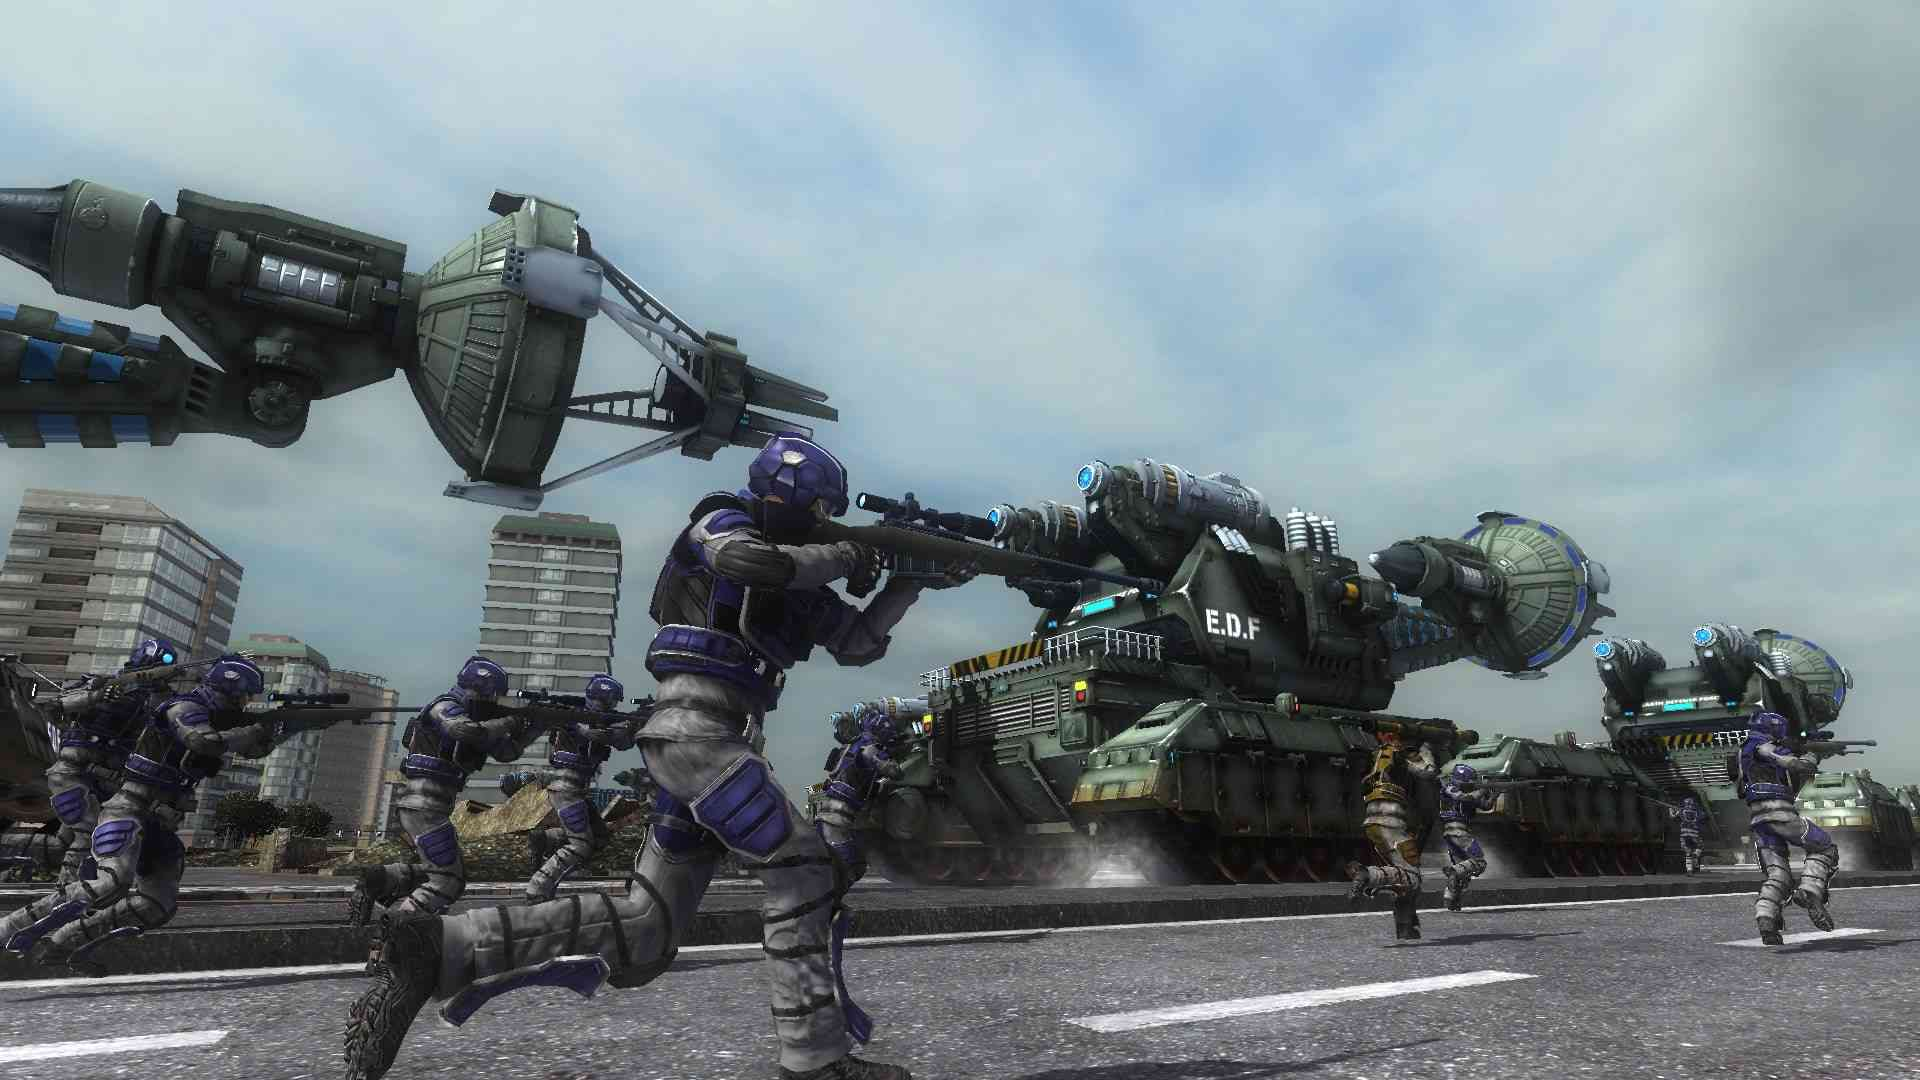 PC Players Will Be Able to Play Earth Defense Force 5 This Week Via Steam - COGconnected